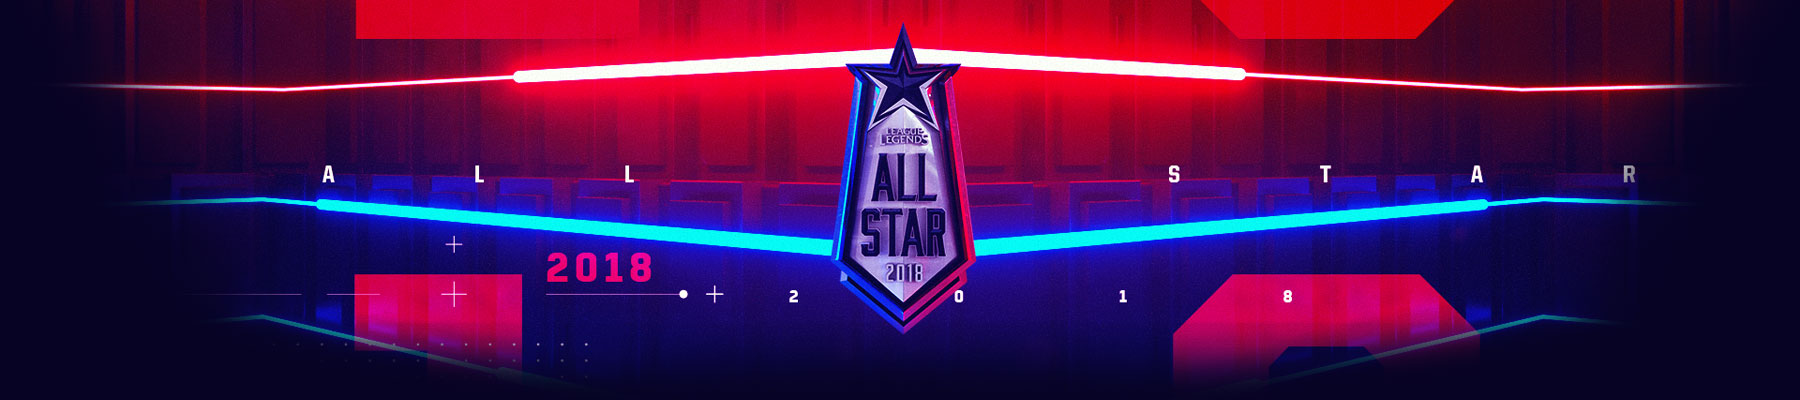 WELCOME TO ALL-STAR 2018 VOTING